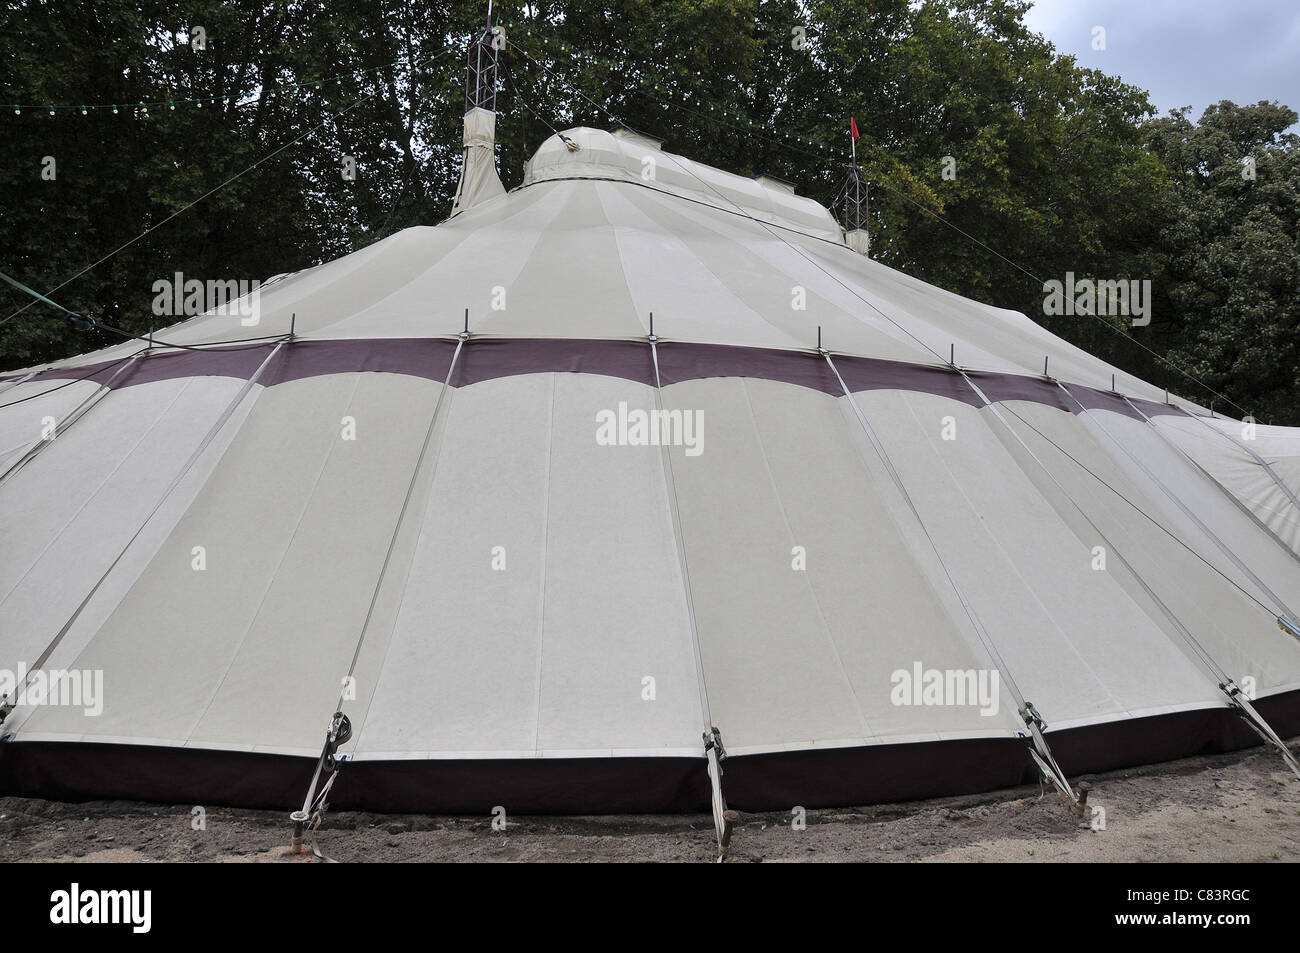 Circus tent in Bercy park Paris France - Stock Image